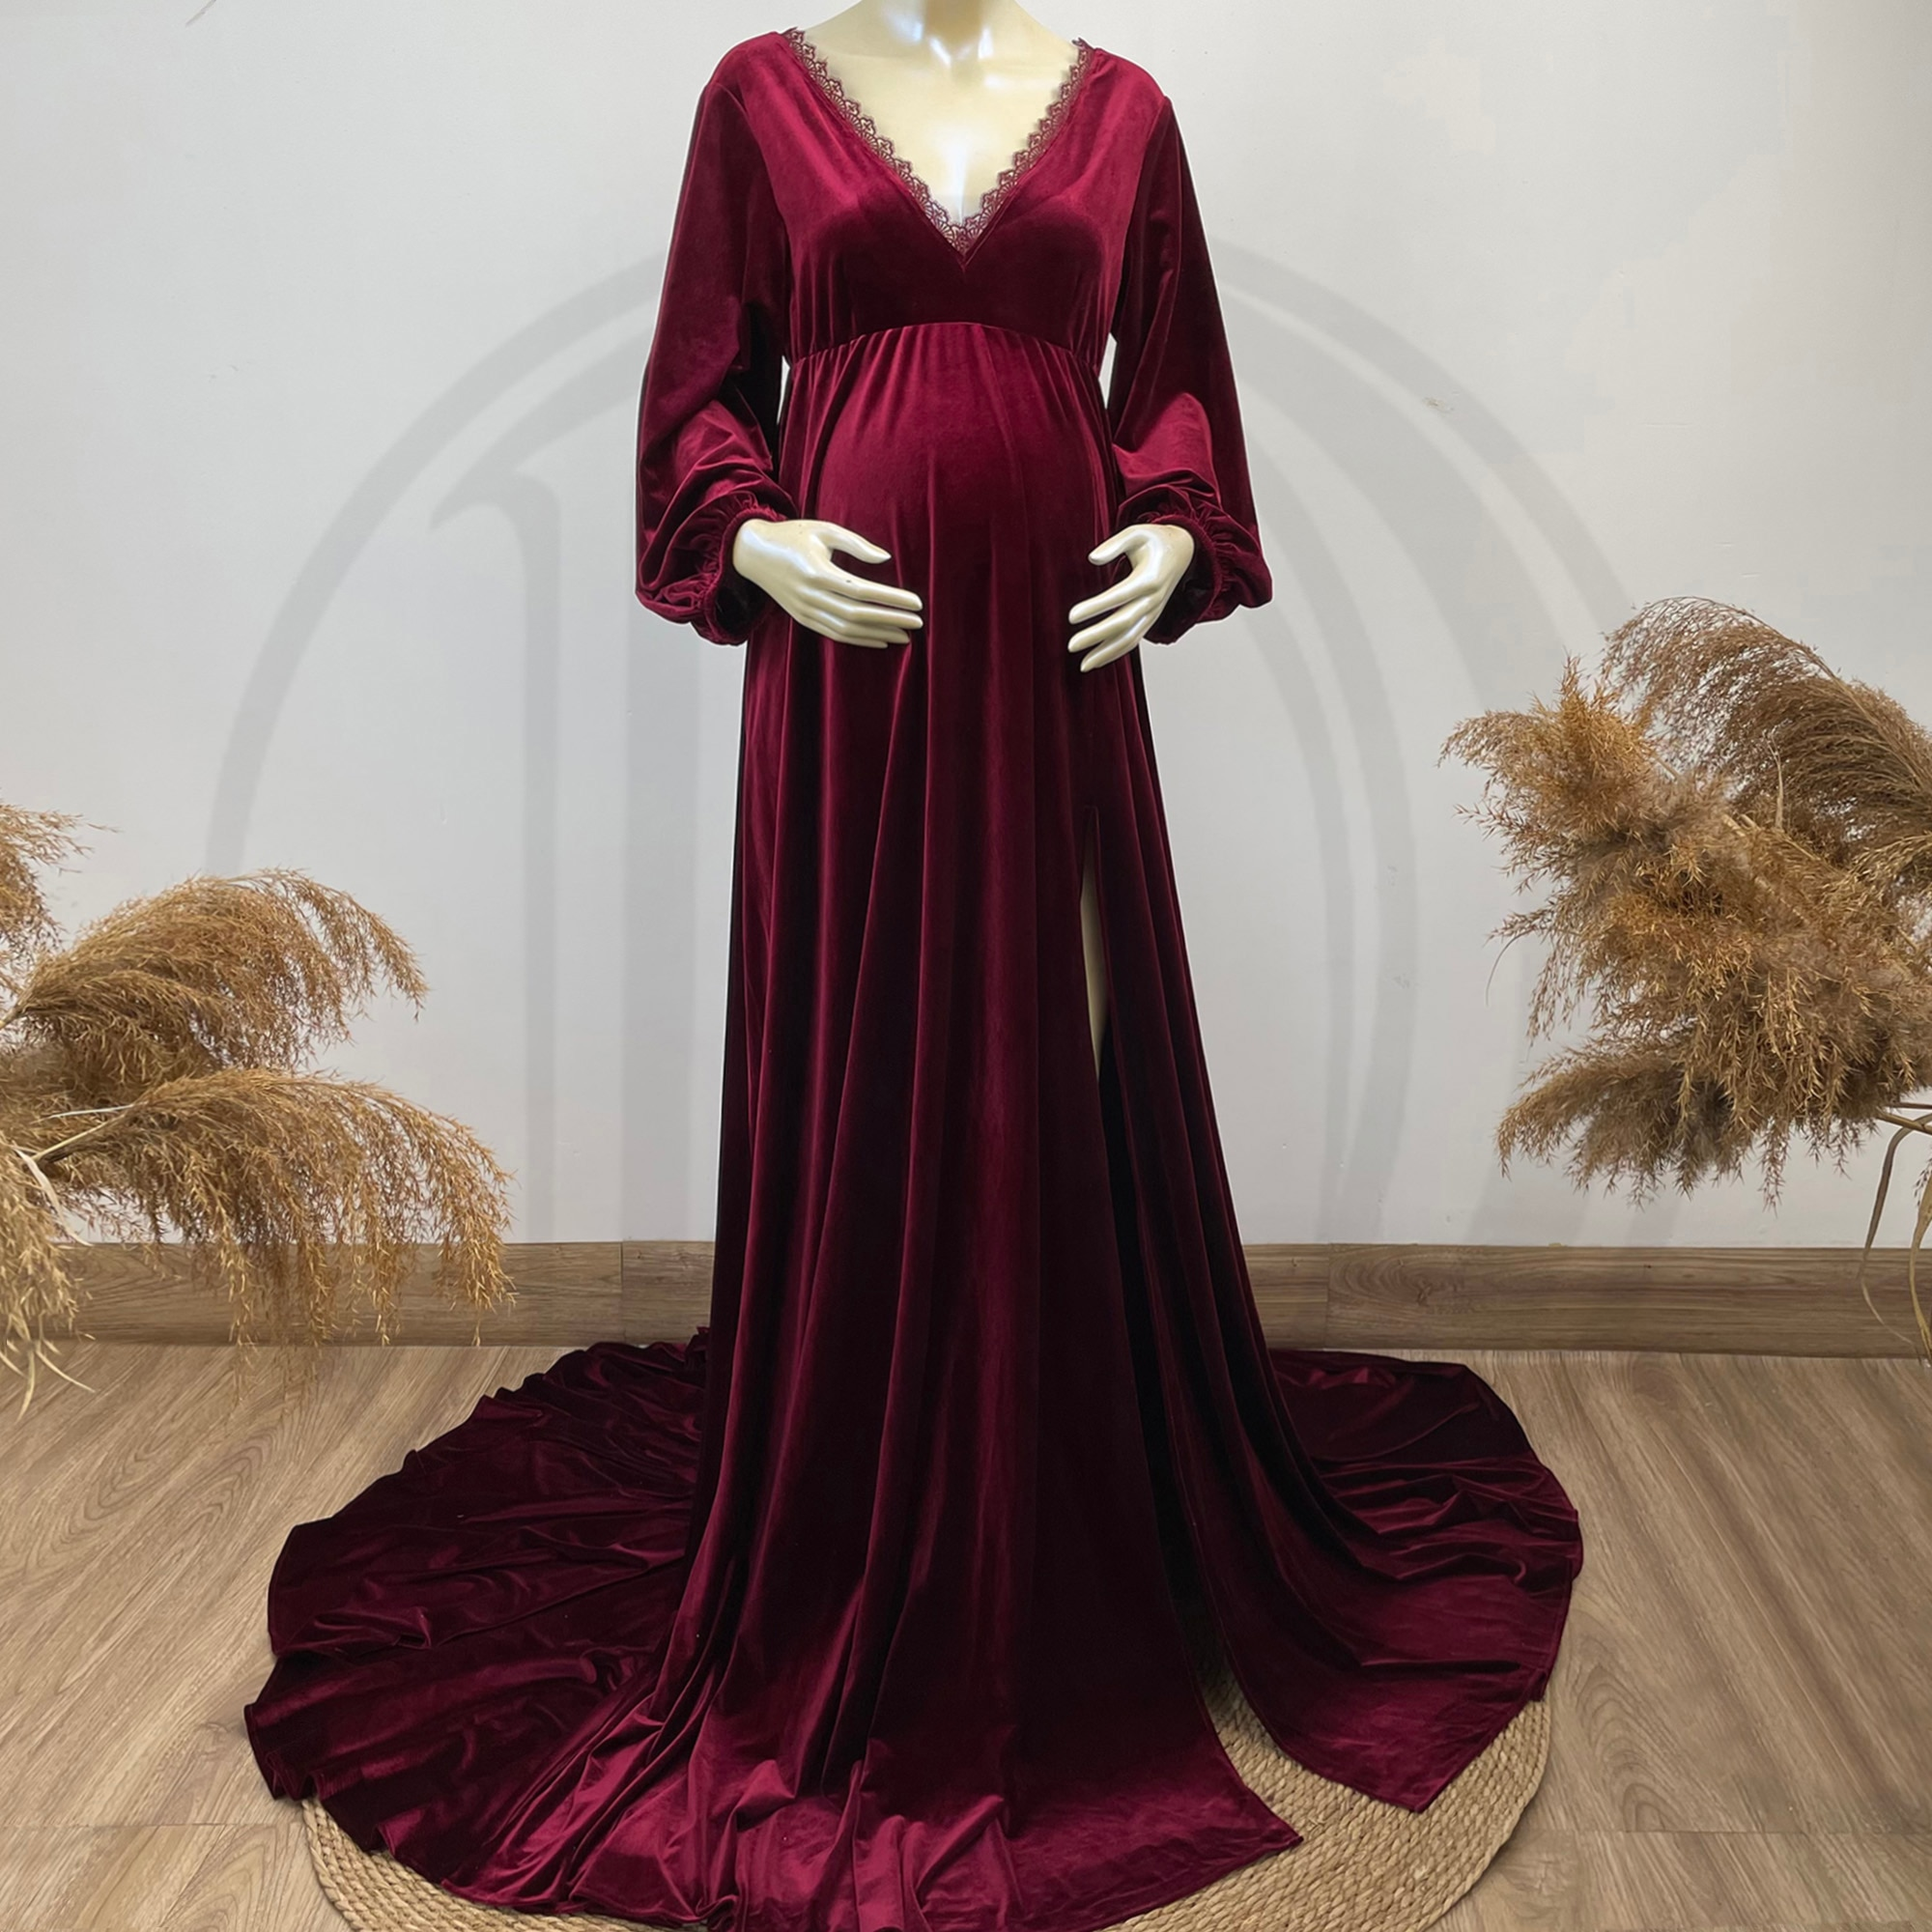 Photo Shoot Boho Robe Maxi White Edge Maternity Dress with Long Cape Pregnancy Velvet Gown for Woman Photography Accessories